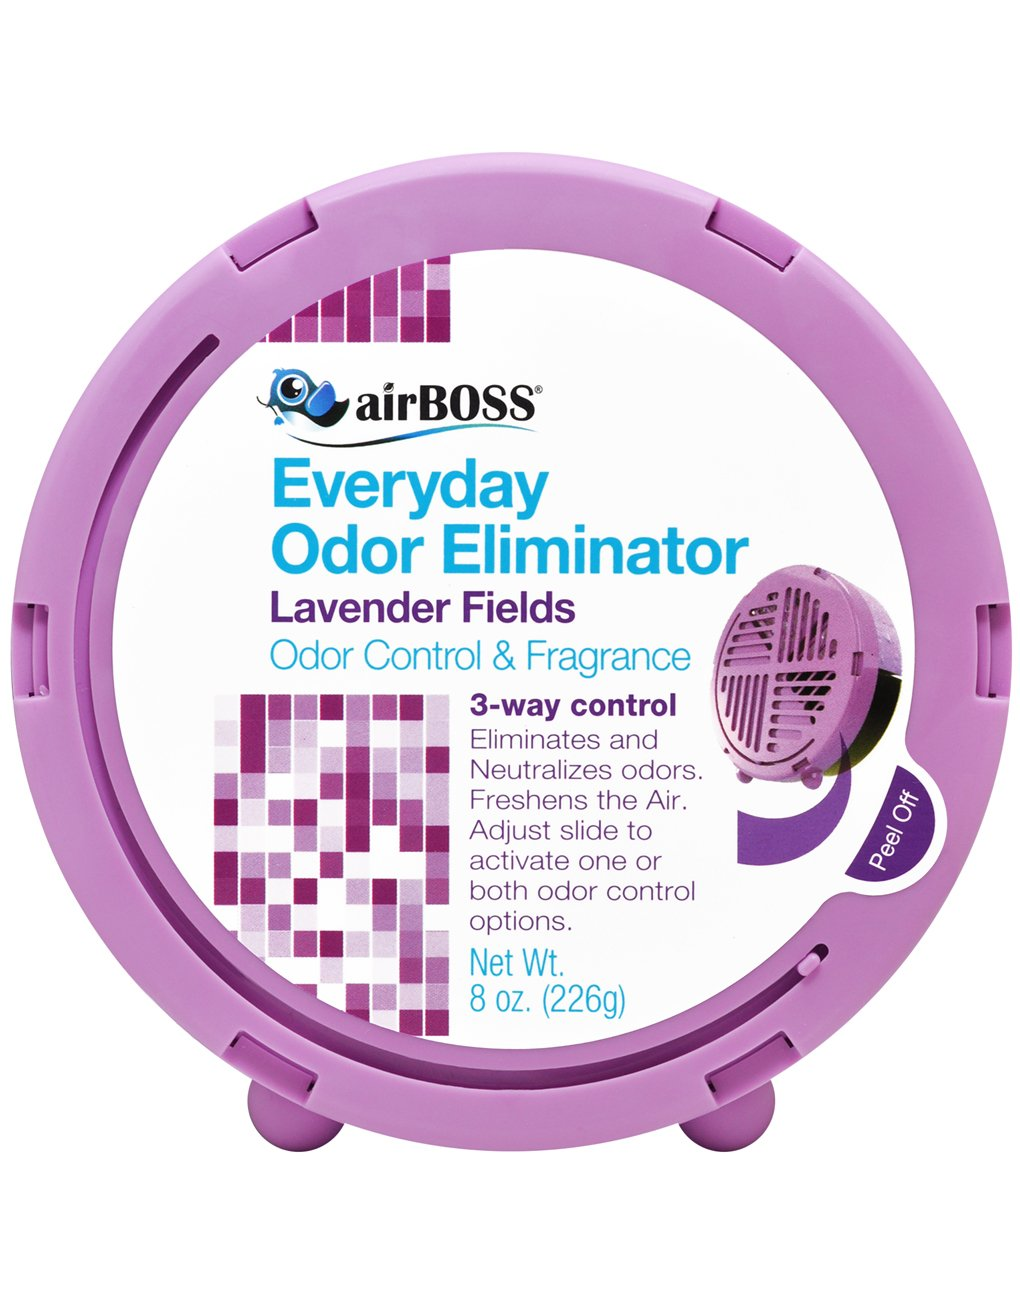 airBOSS Everyday Odor Eliminator - Lavender Fields by airBOSS